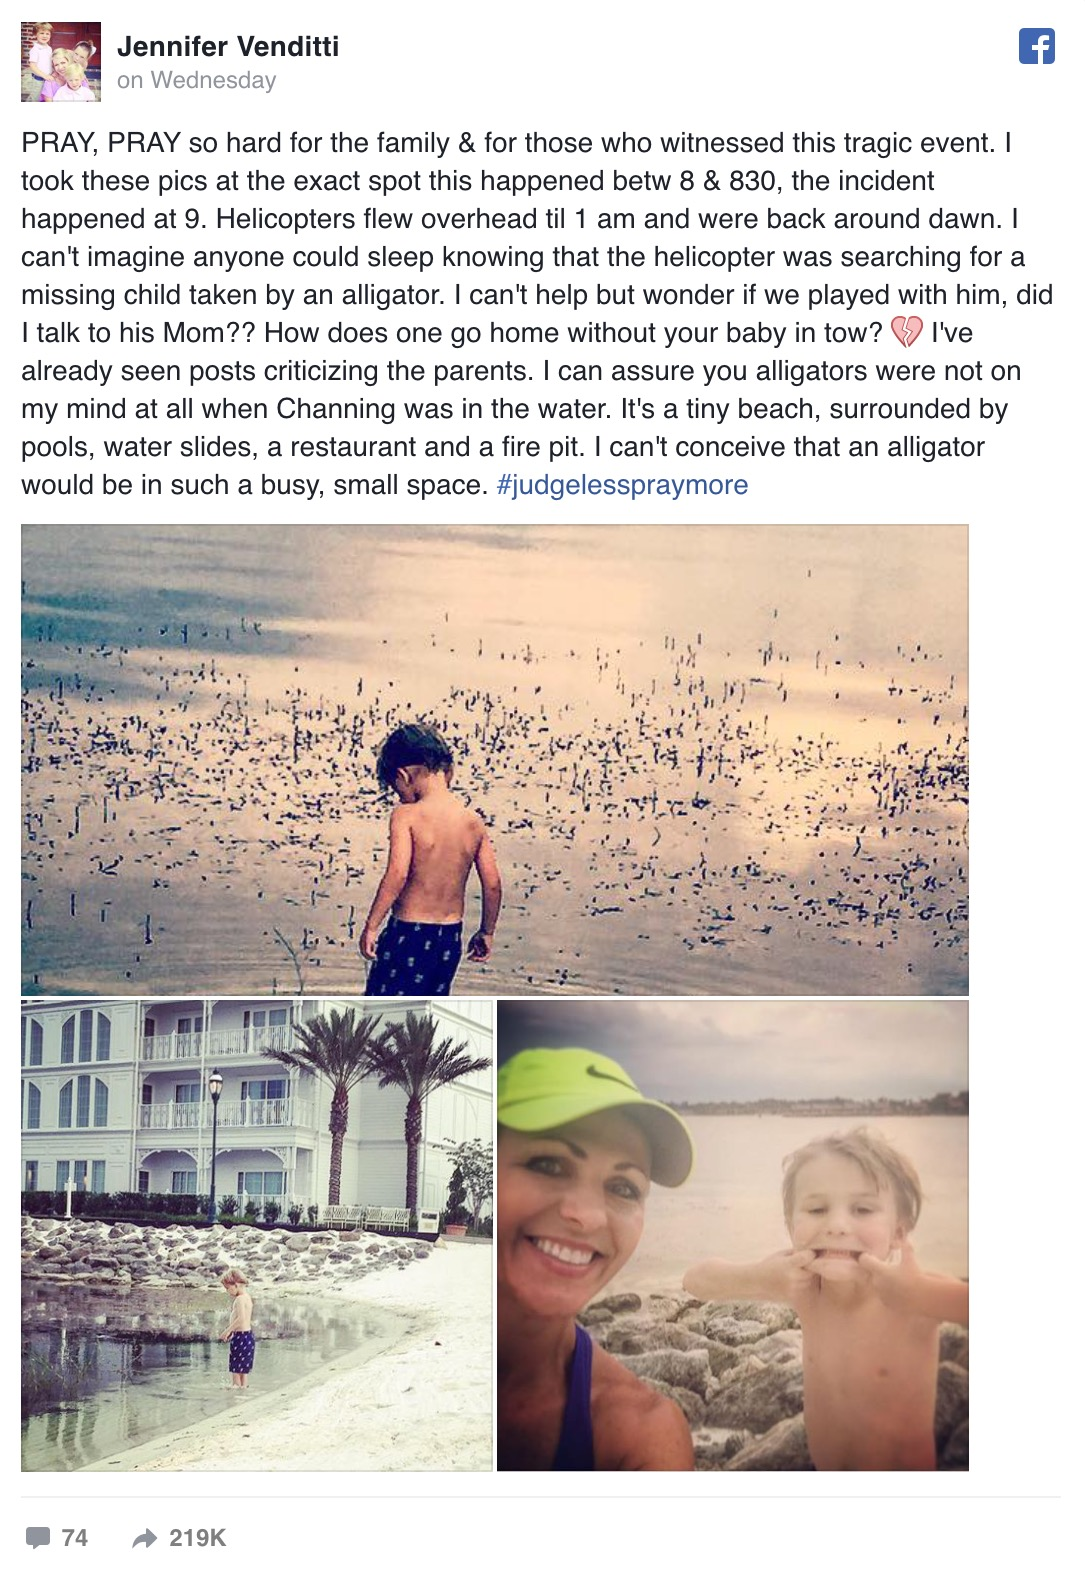 Photo of boy playing in the water hours before alligator attack